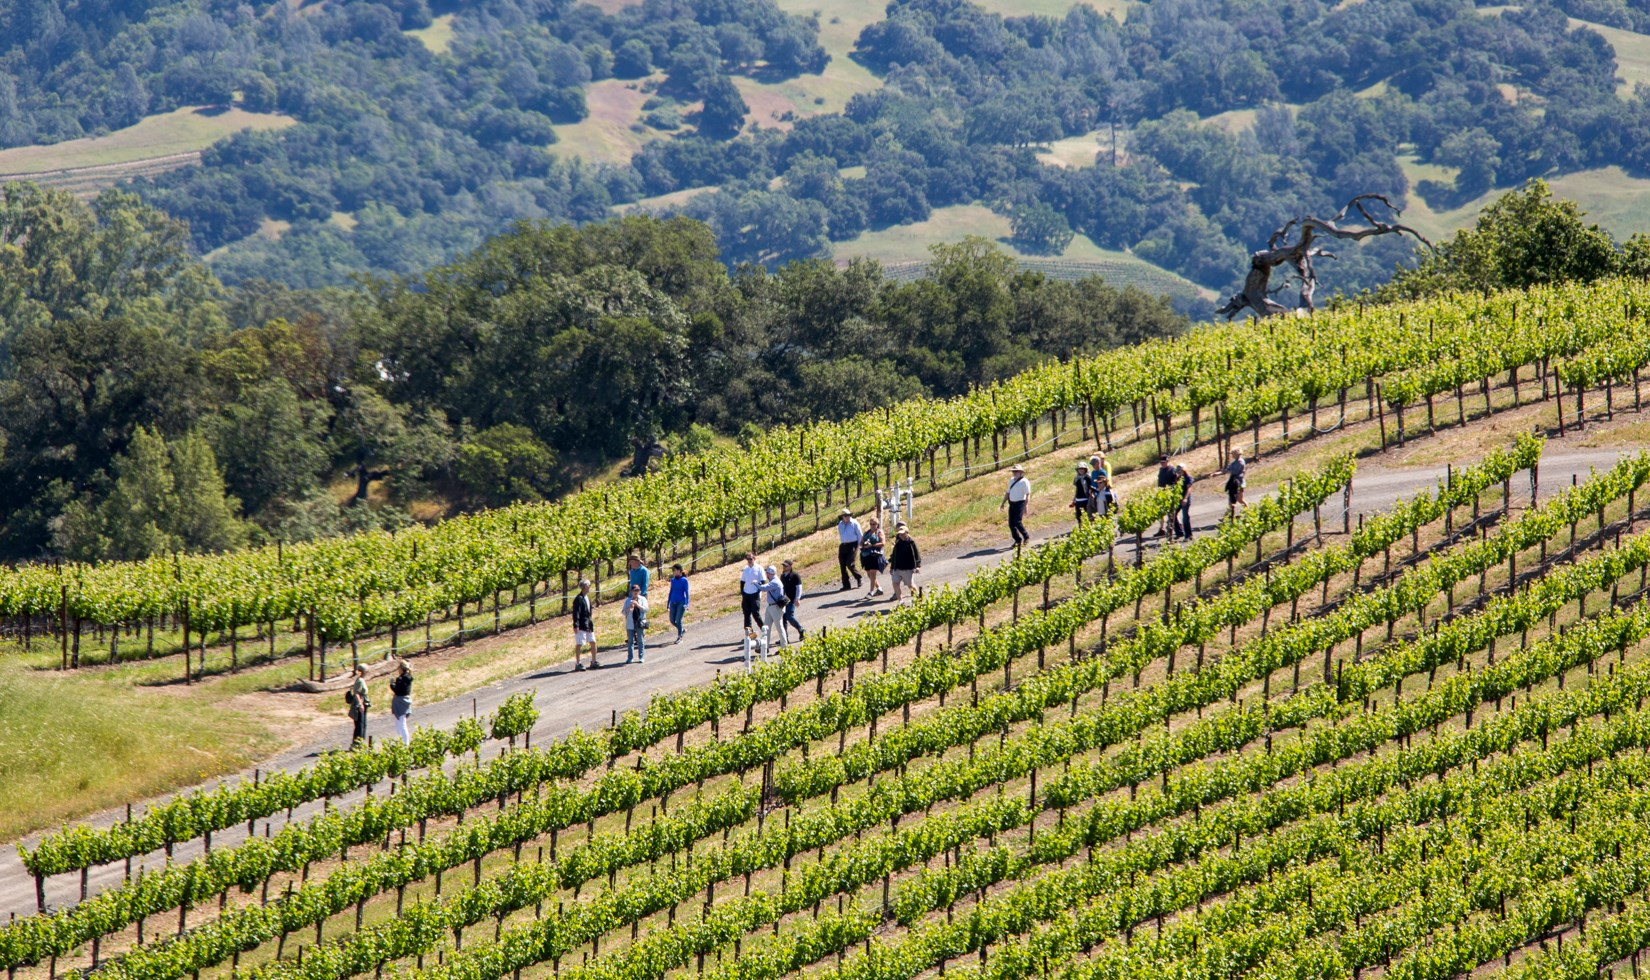 The Vineyard Hike At Jordan Winery In Northern California That Ends With A Picnic And Wine Tasting